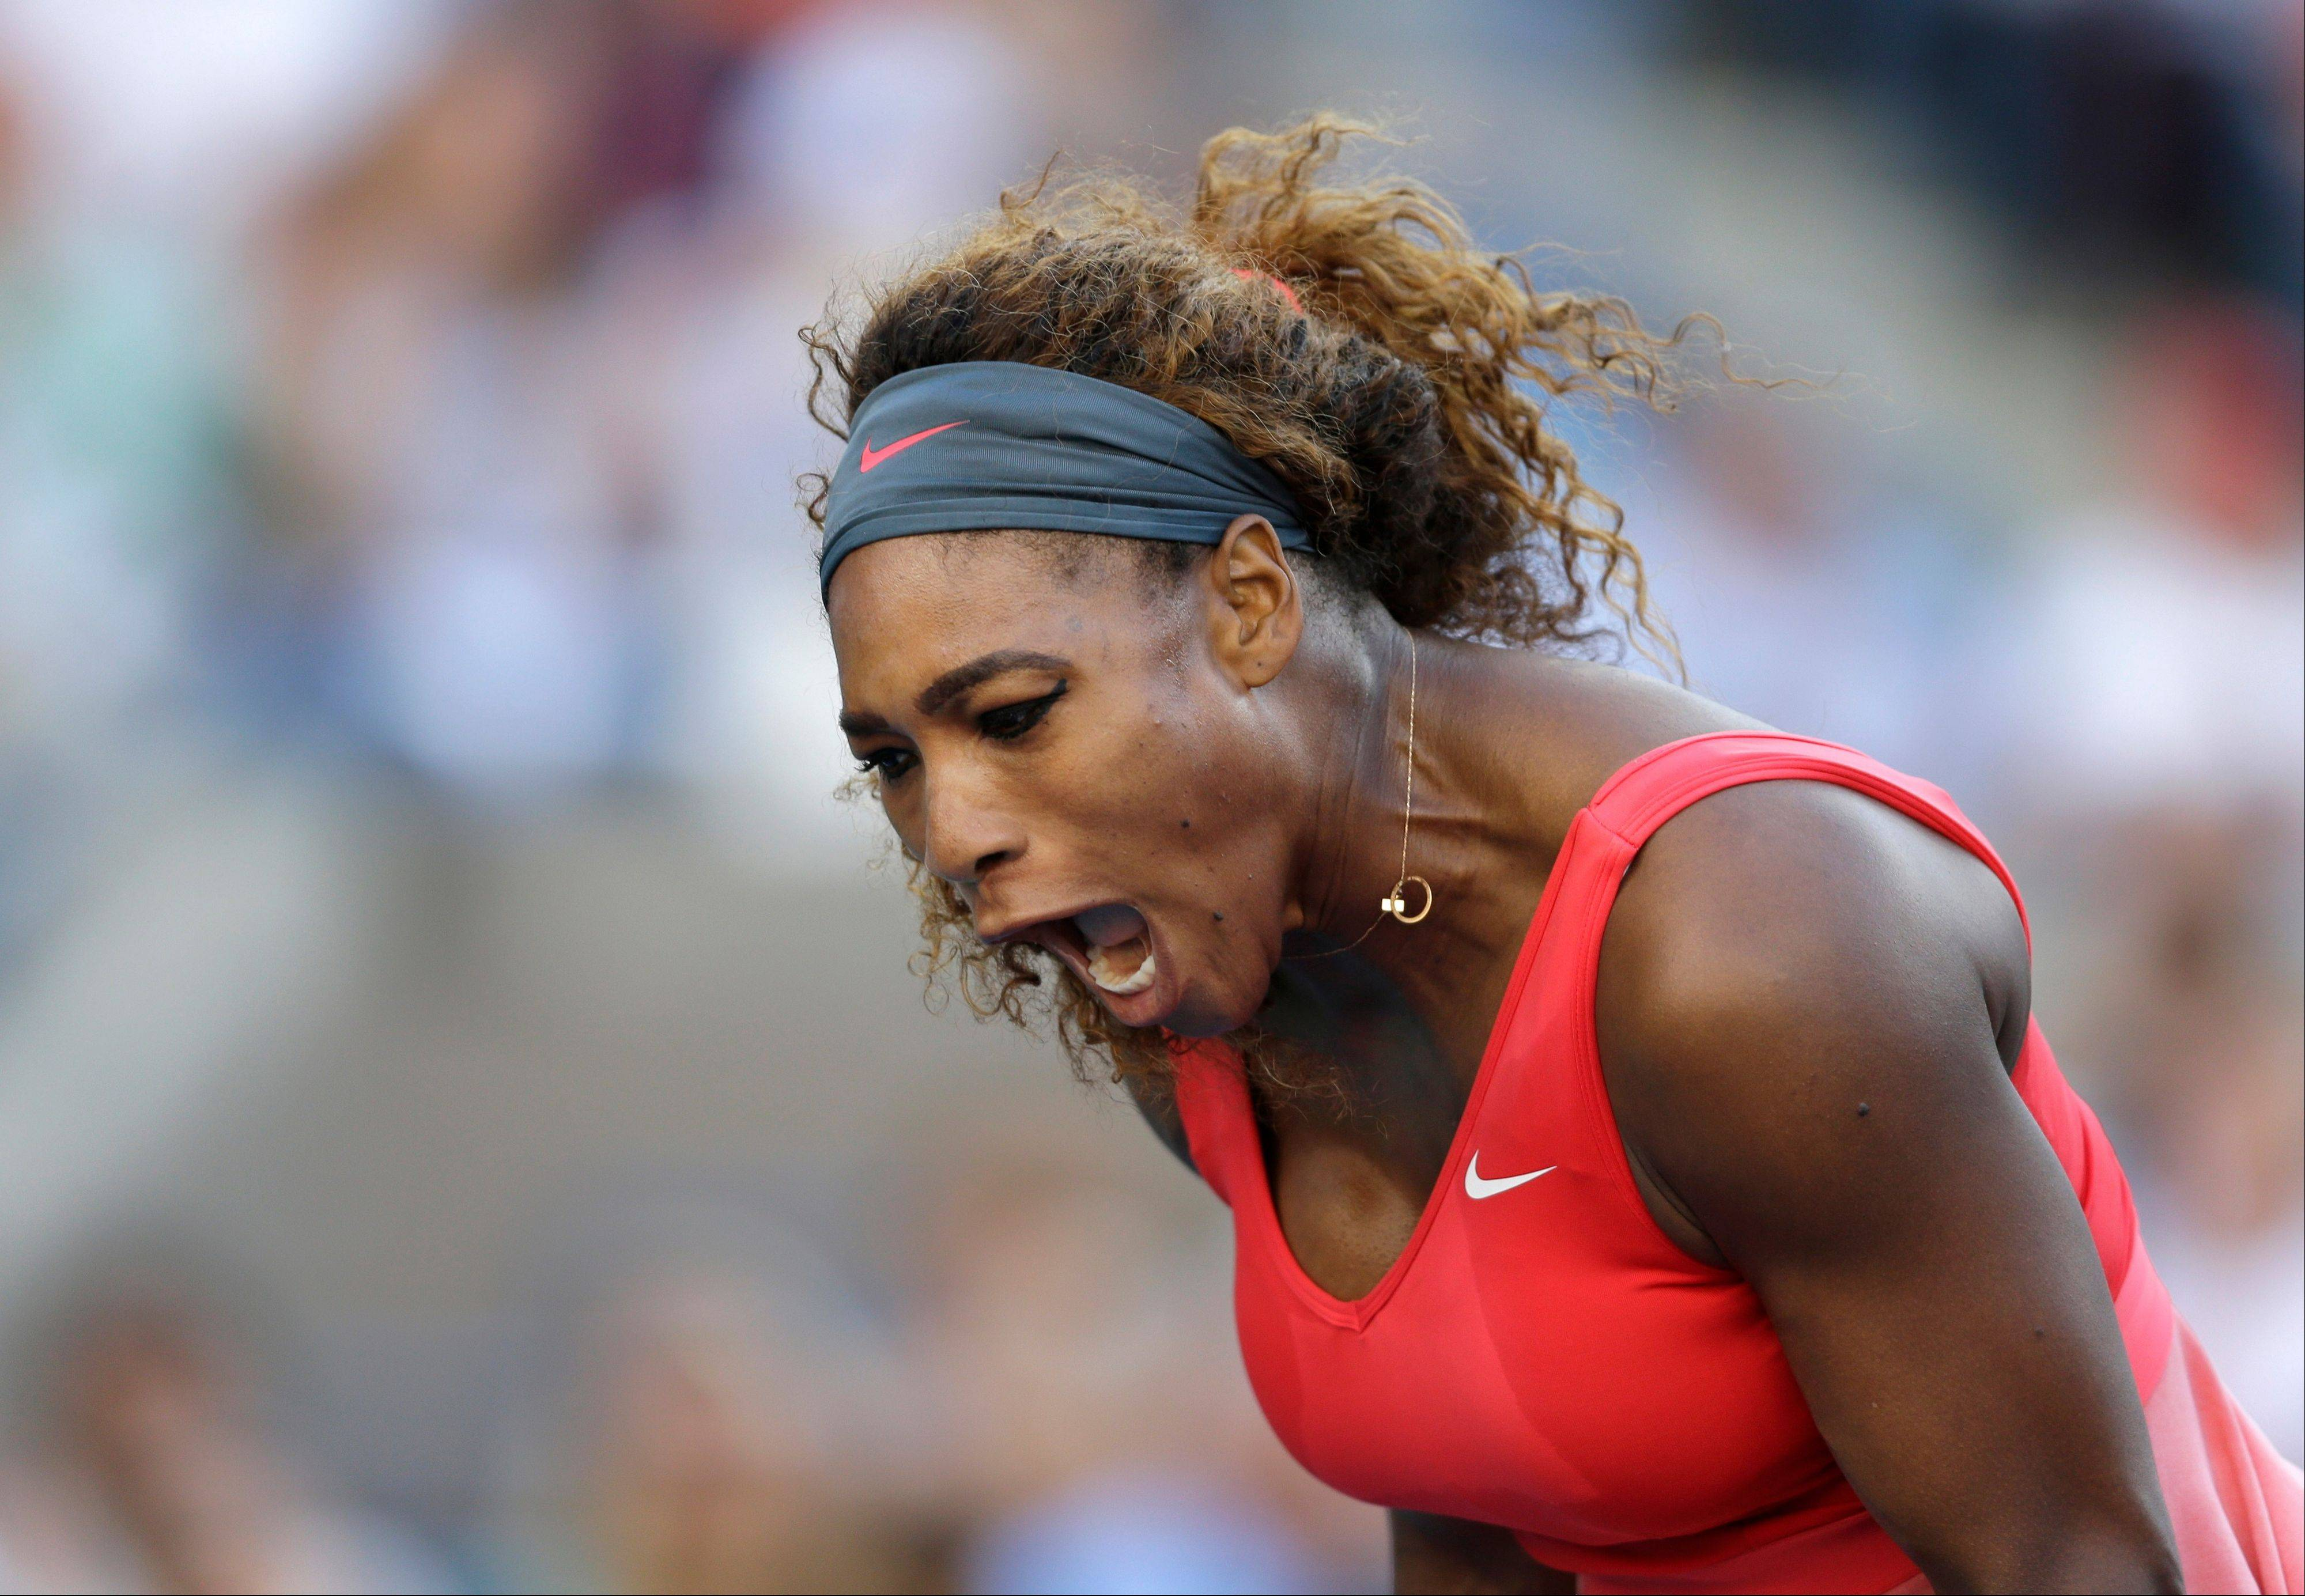 Serena Williams reacts after a point against Victoria Azarenka, of Belarus, during the women's singles final of the 2013 U.S. Open tennis tournament, Sunday, Sept. 8, 2013, in New York.